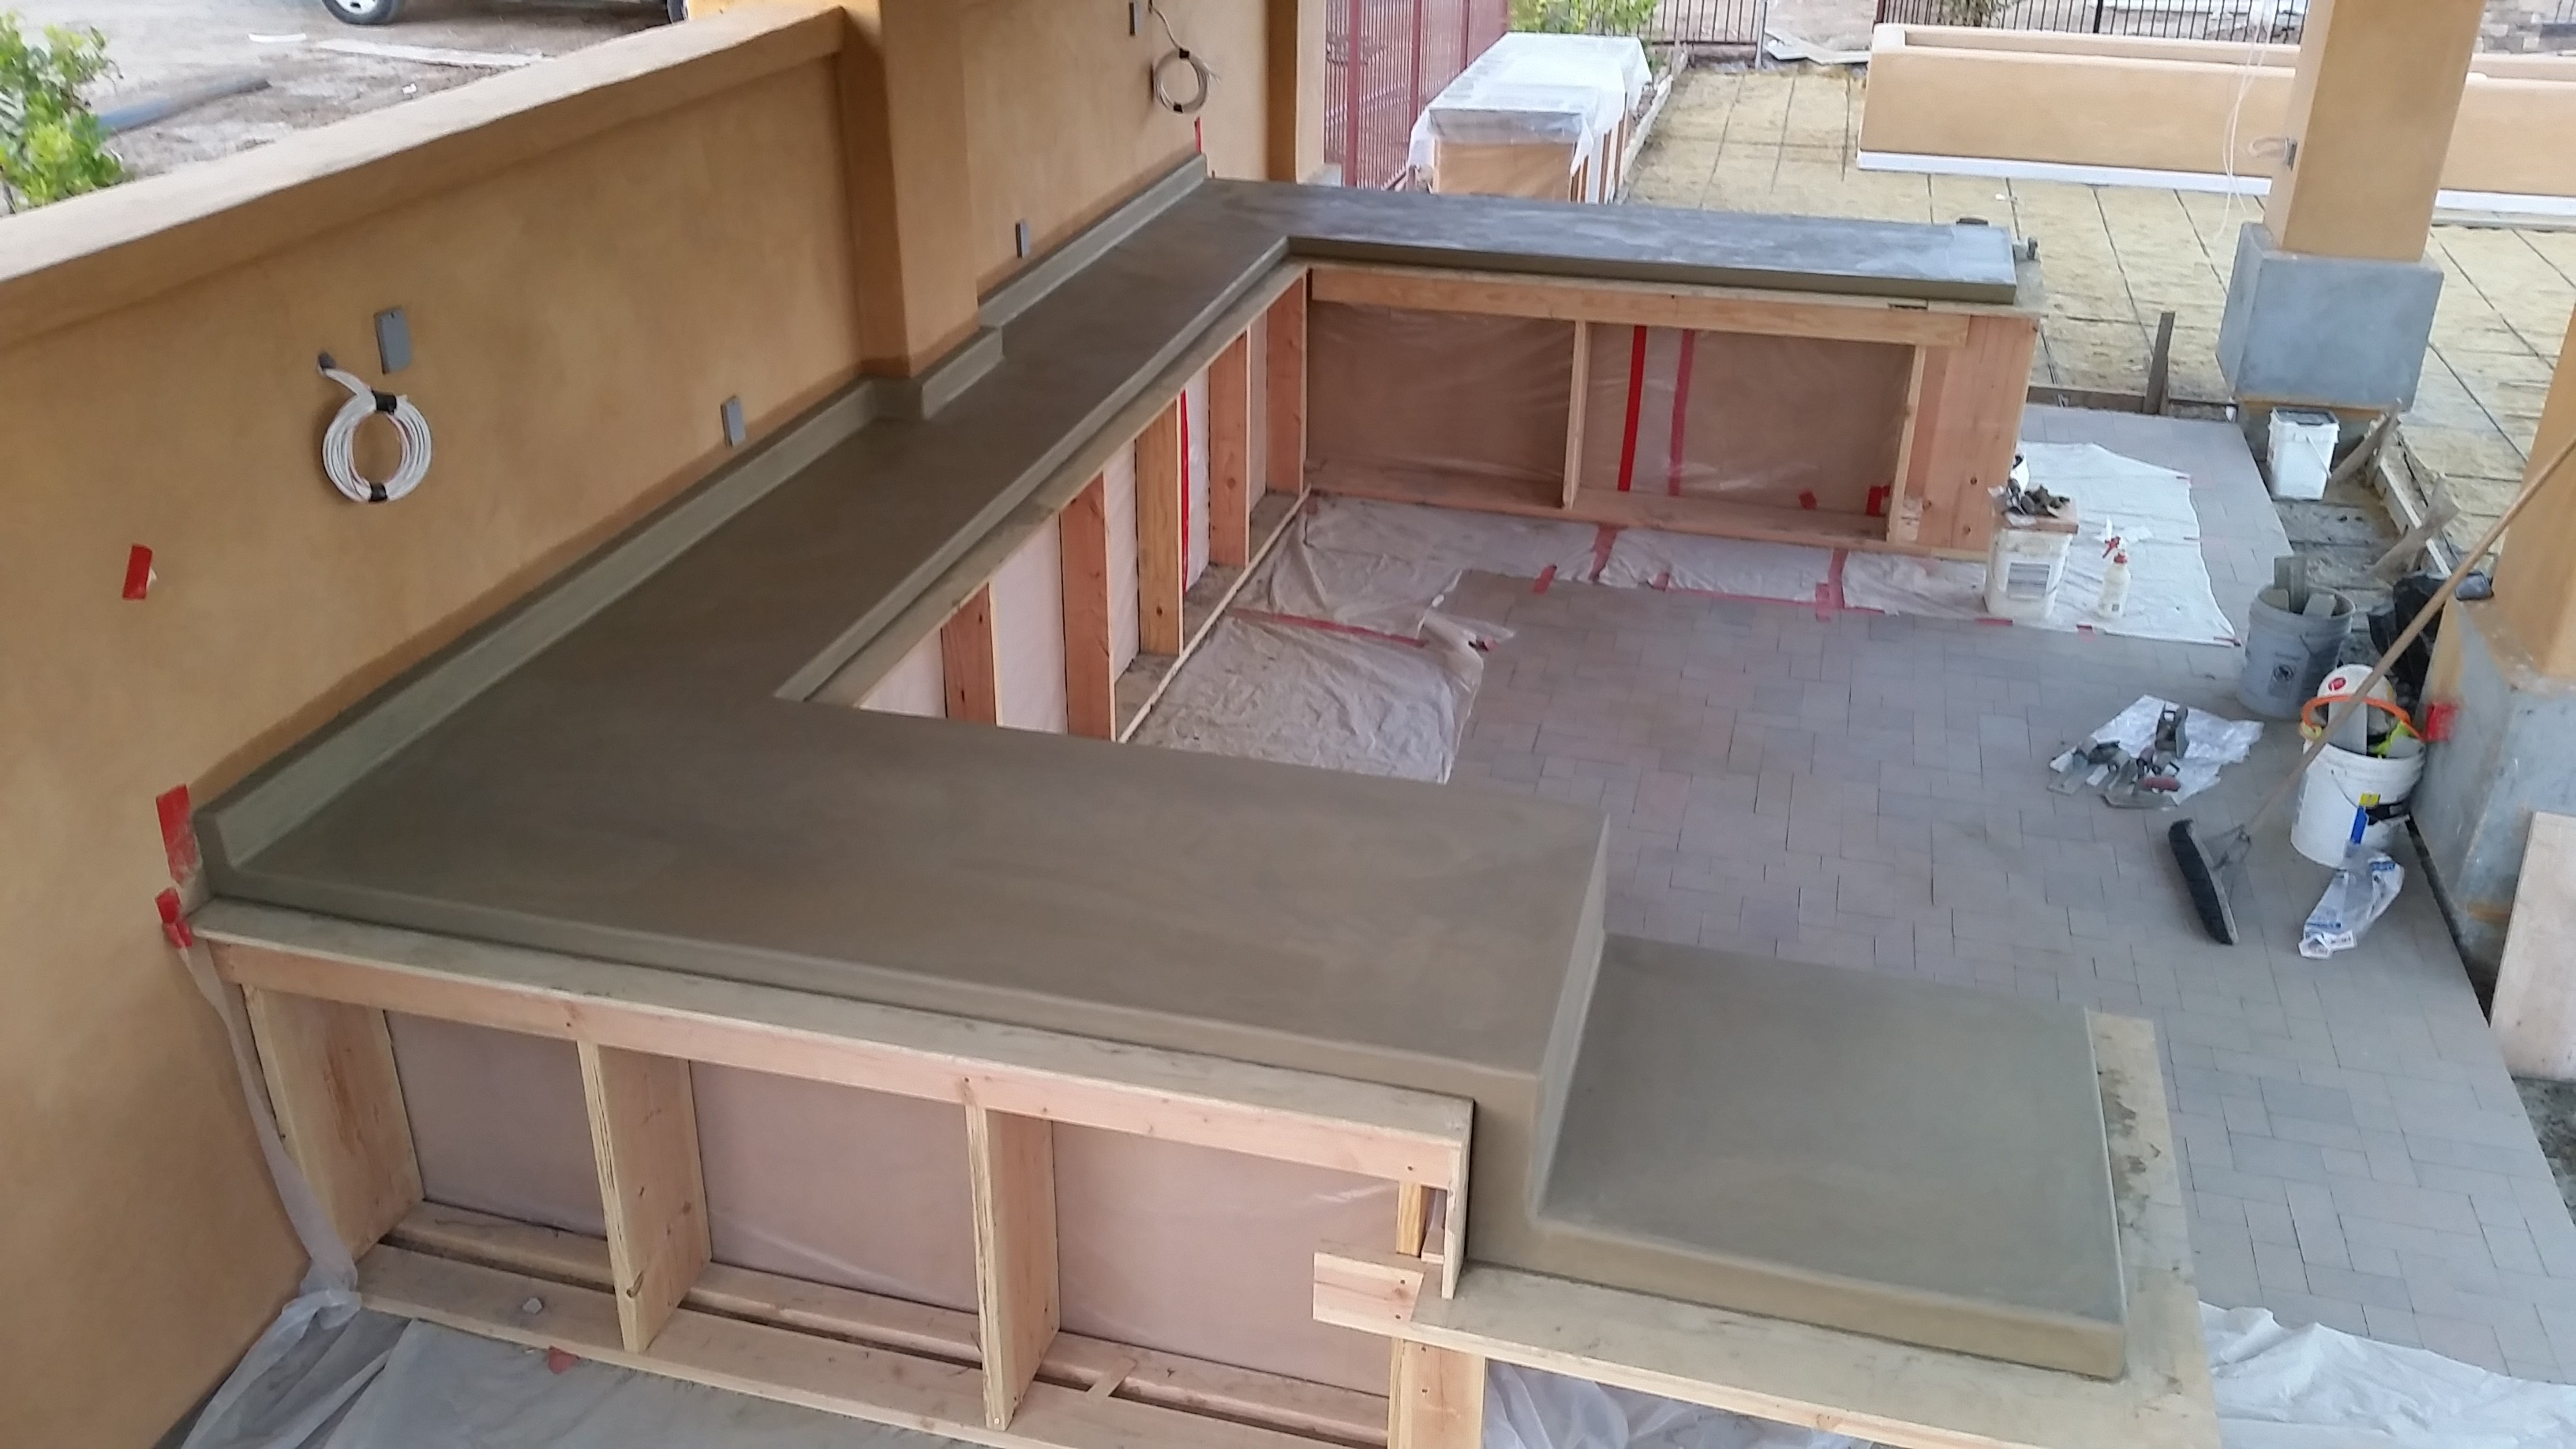 Concrete Countertop With Acid Stain